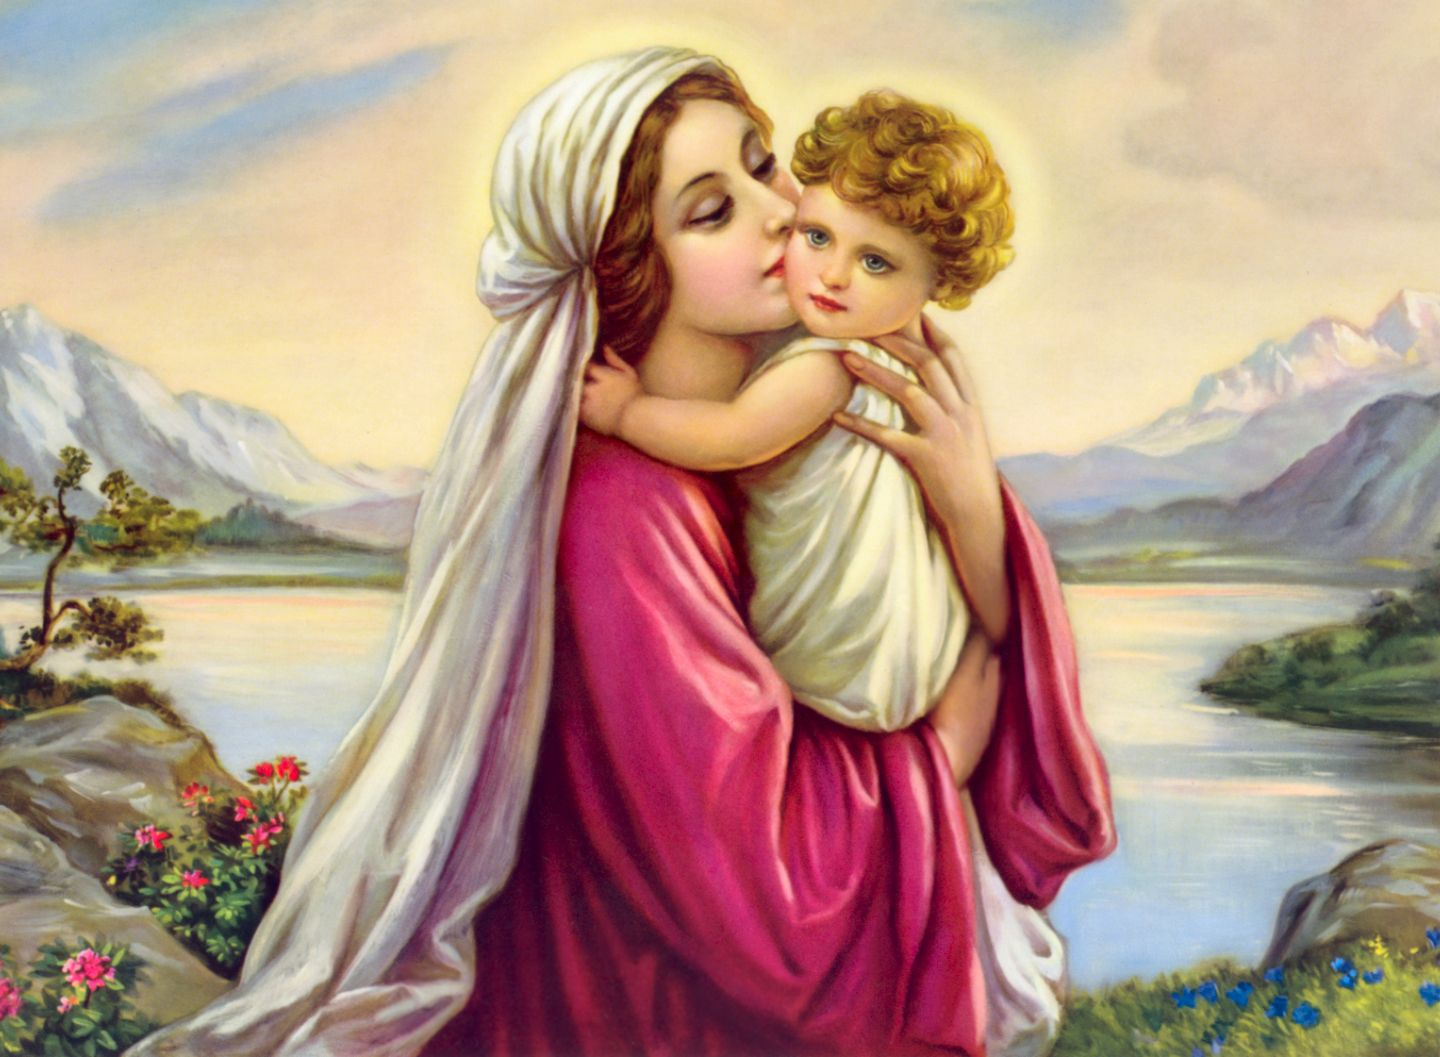 132 best images about Virgin Mary on Pinterest   Virgin mary ...